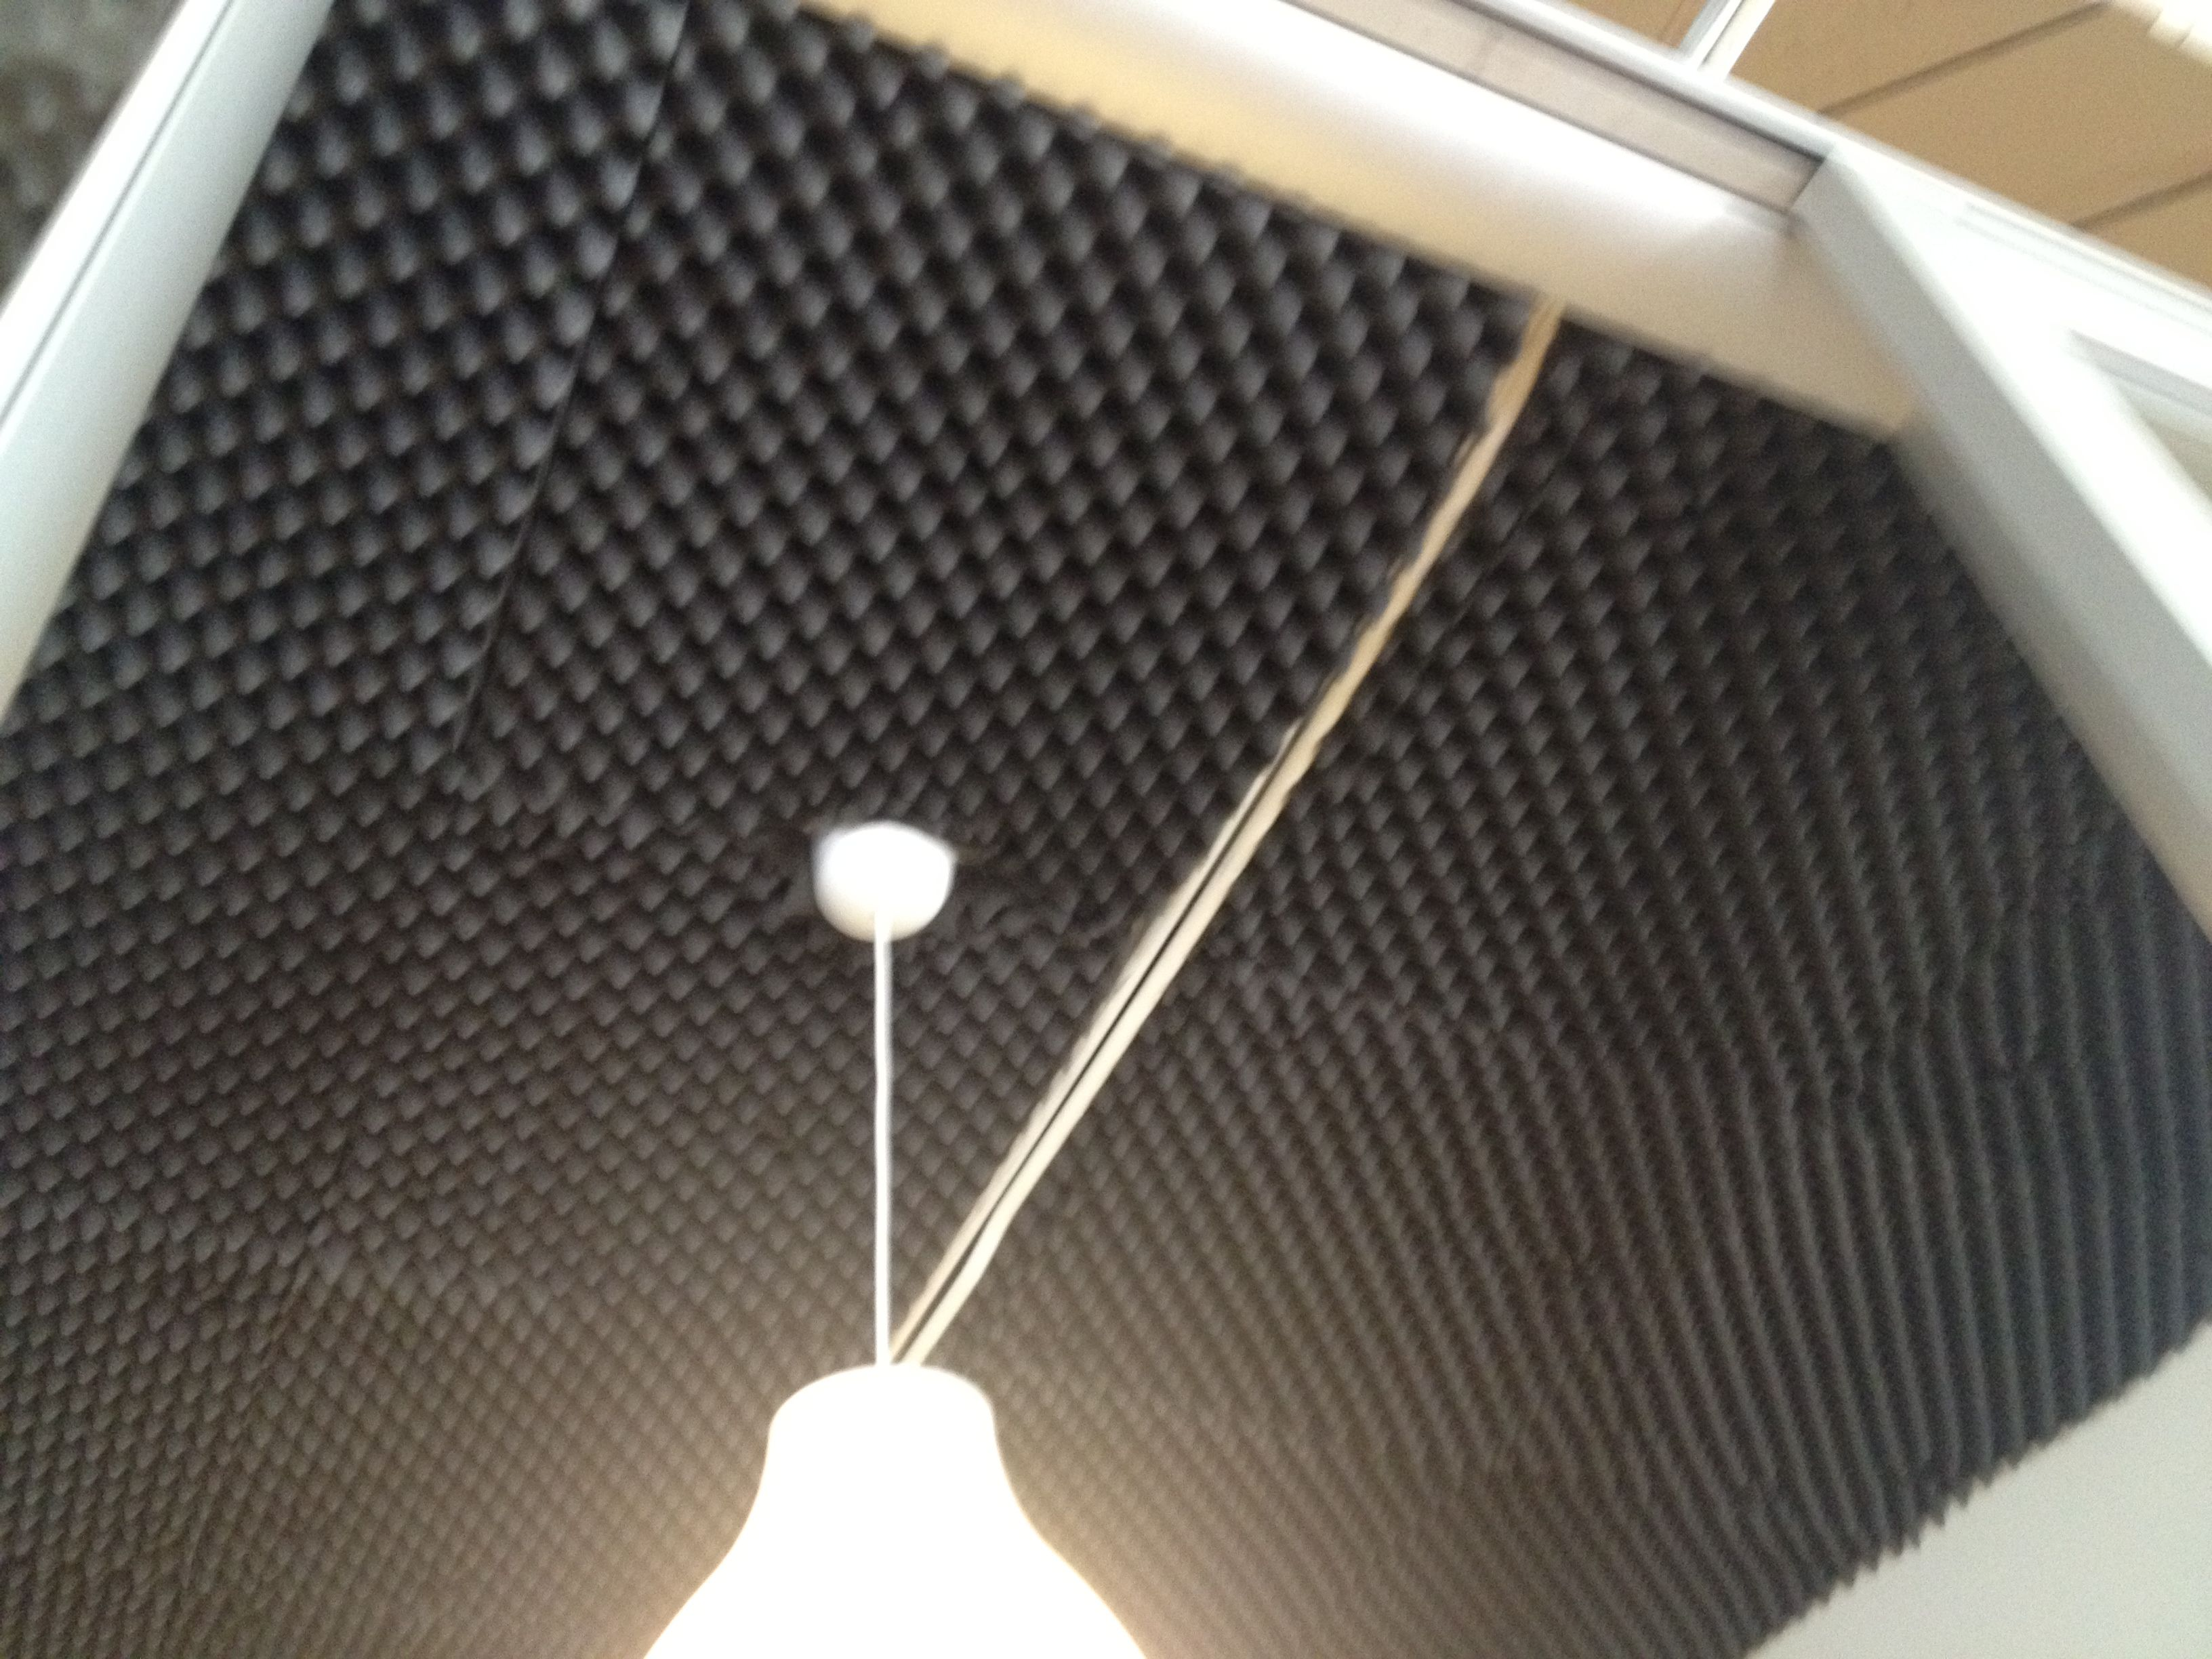 Soundproof Roof Sound Proofing Parrot Bird Lamp